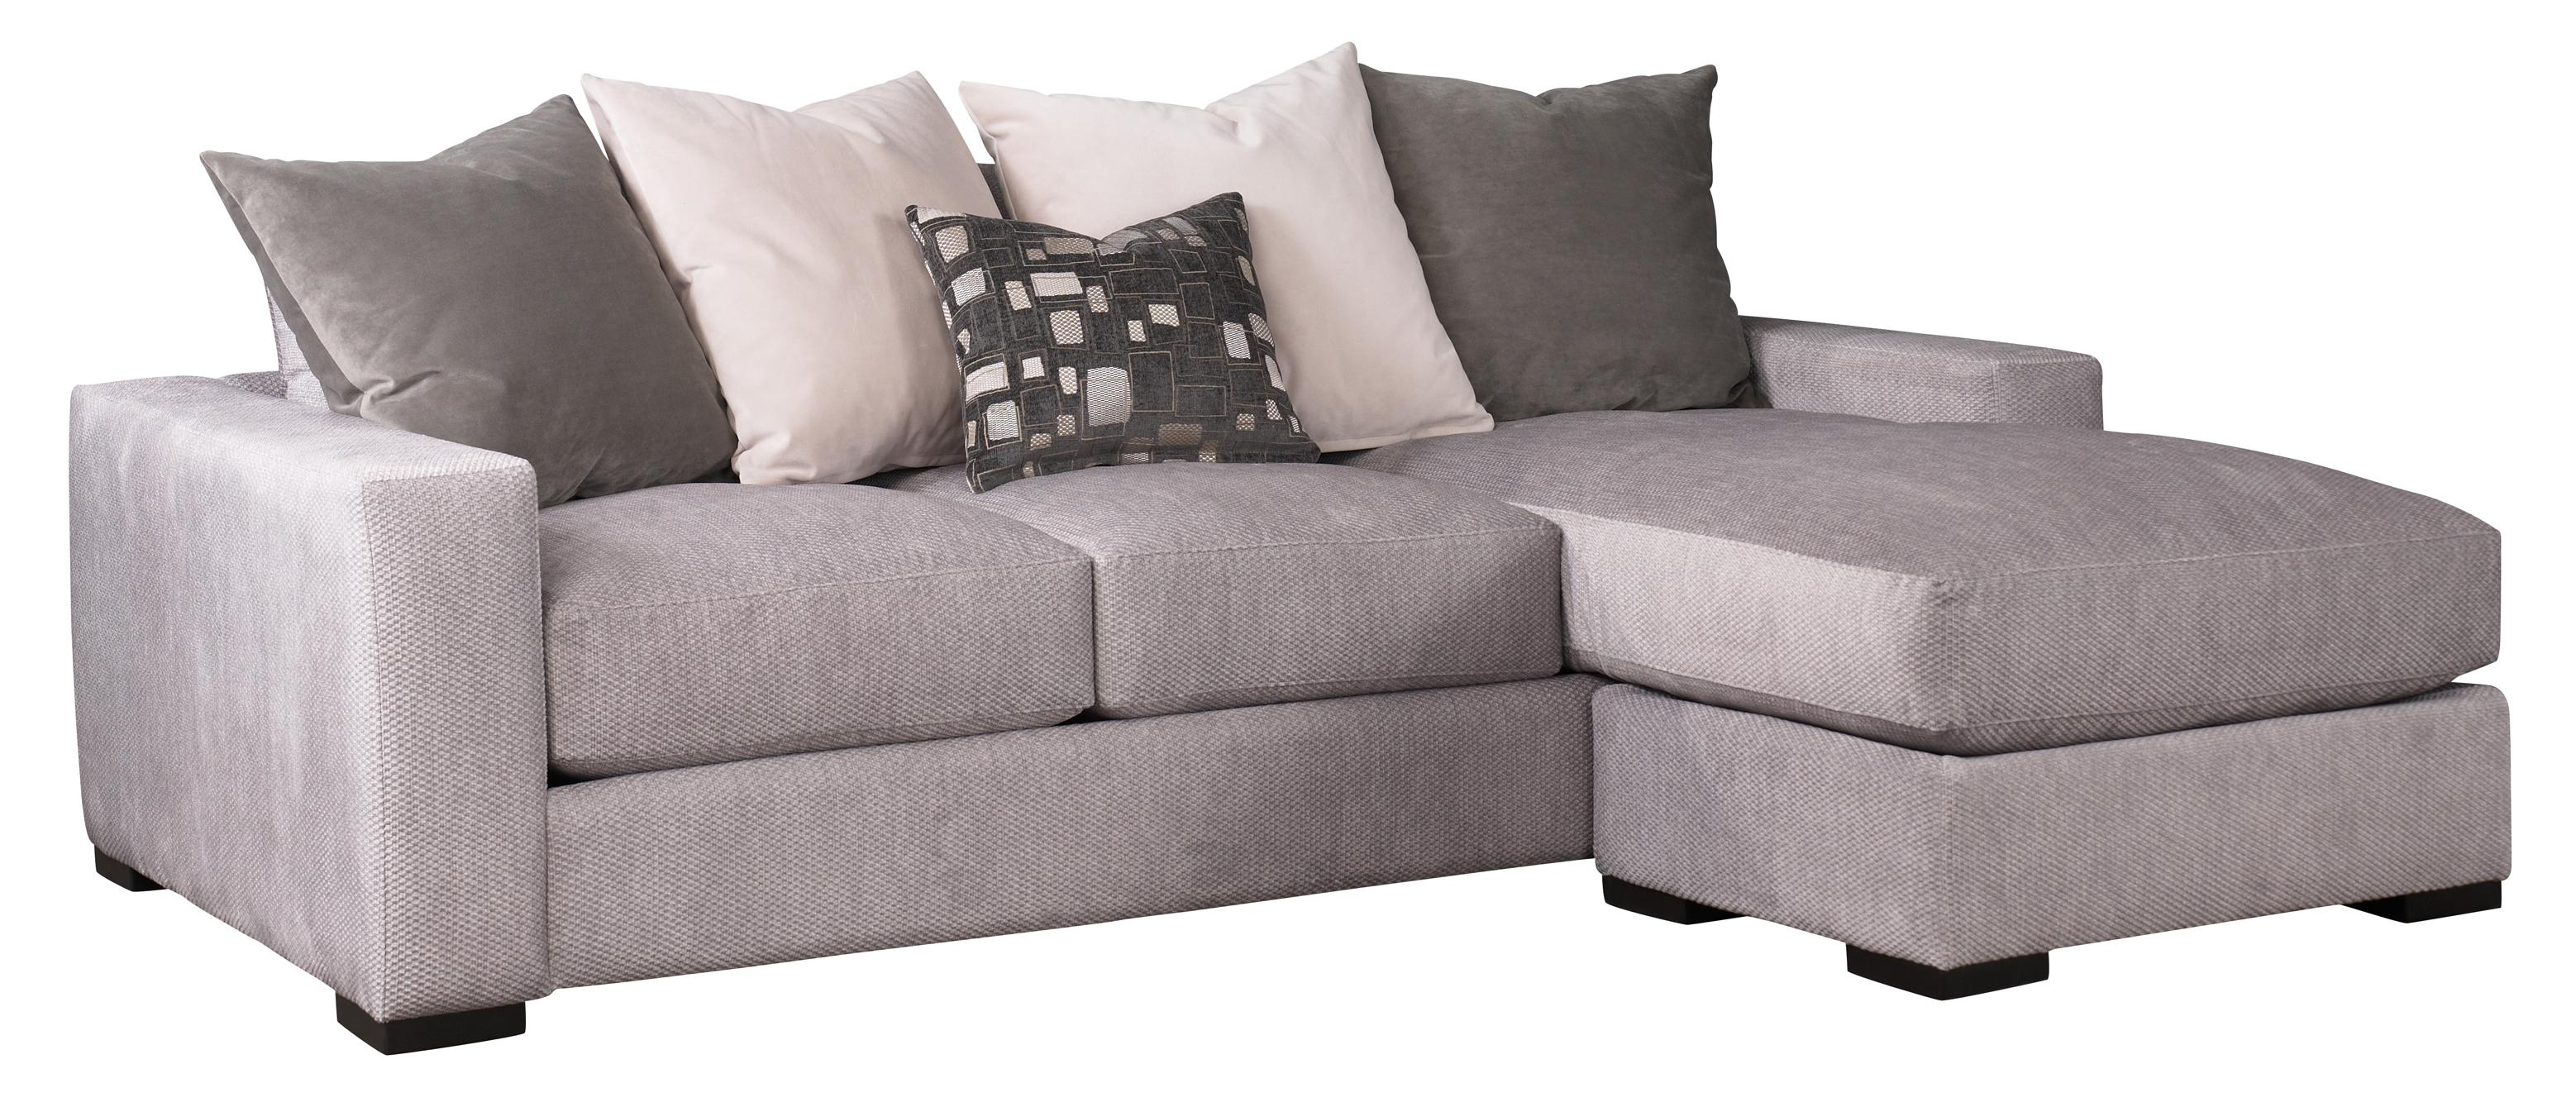 sofas couches ikea couch epic pin chaise in with and ideas awesome